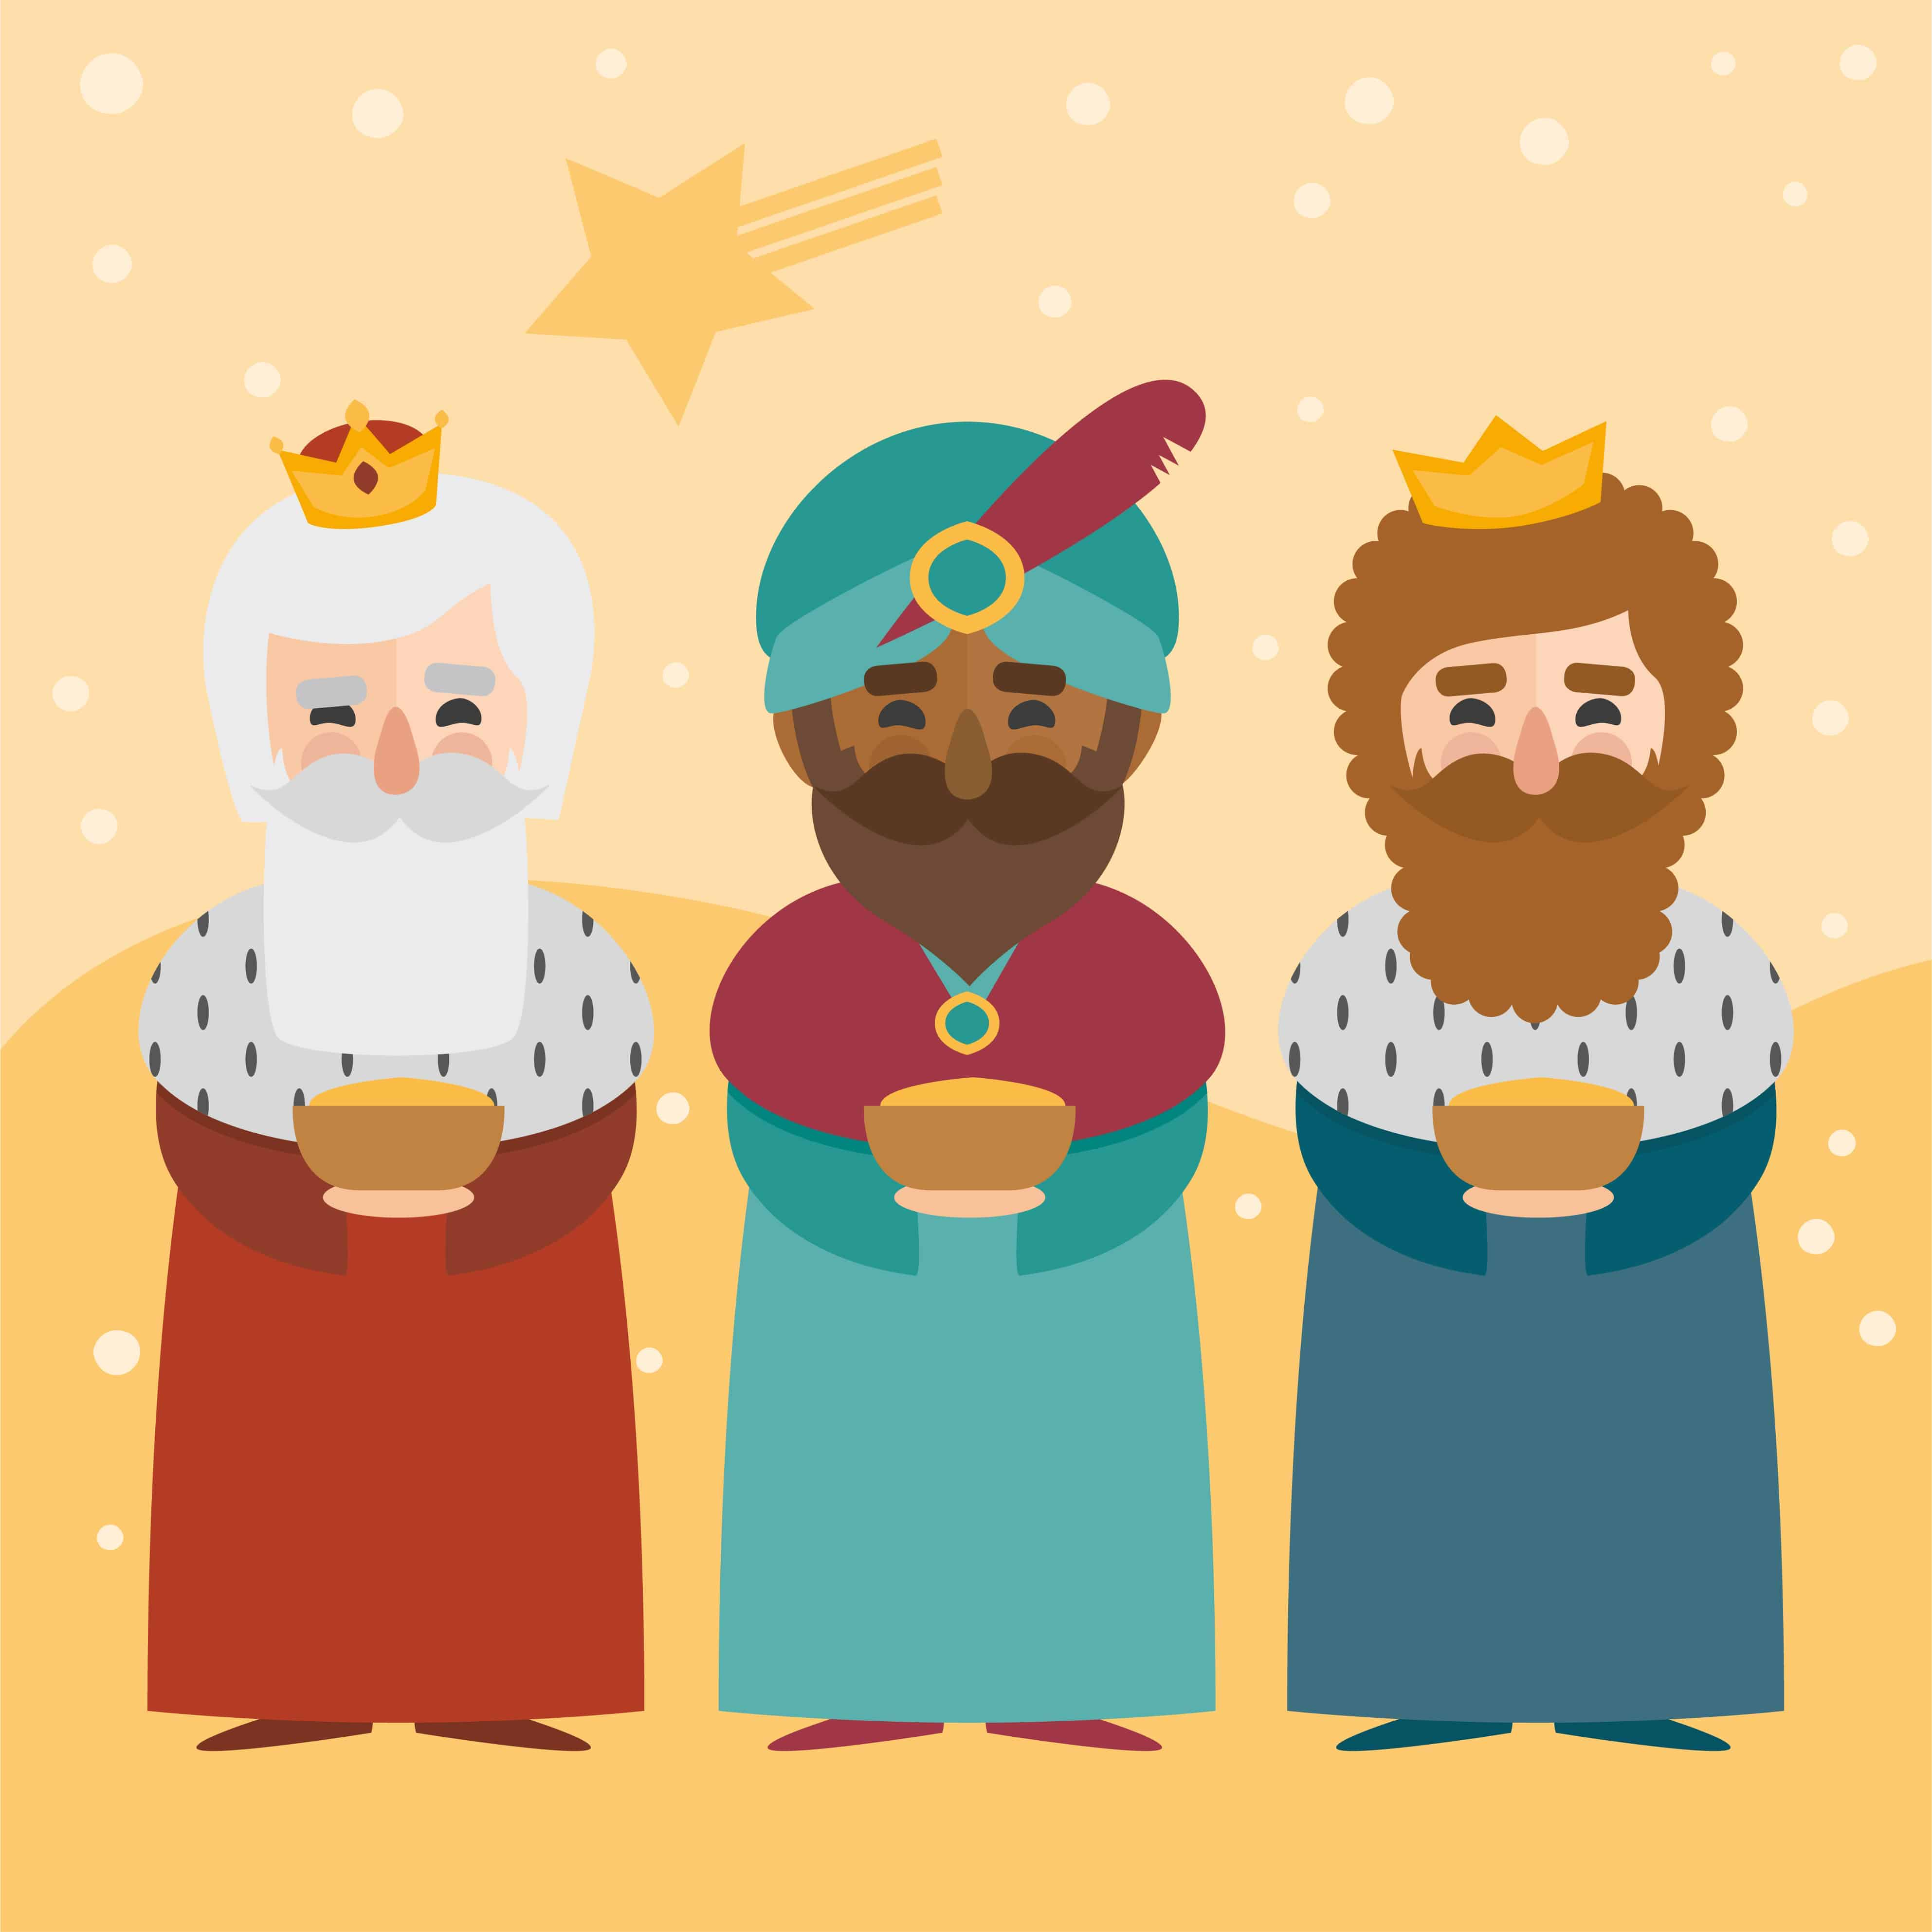 The three wise men, Melchior, Gaspar, and Balthasar